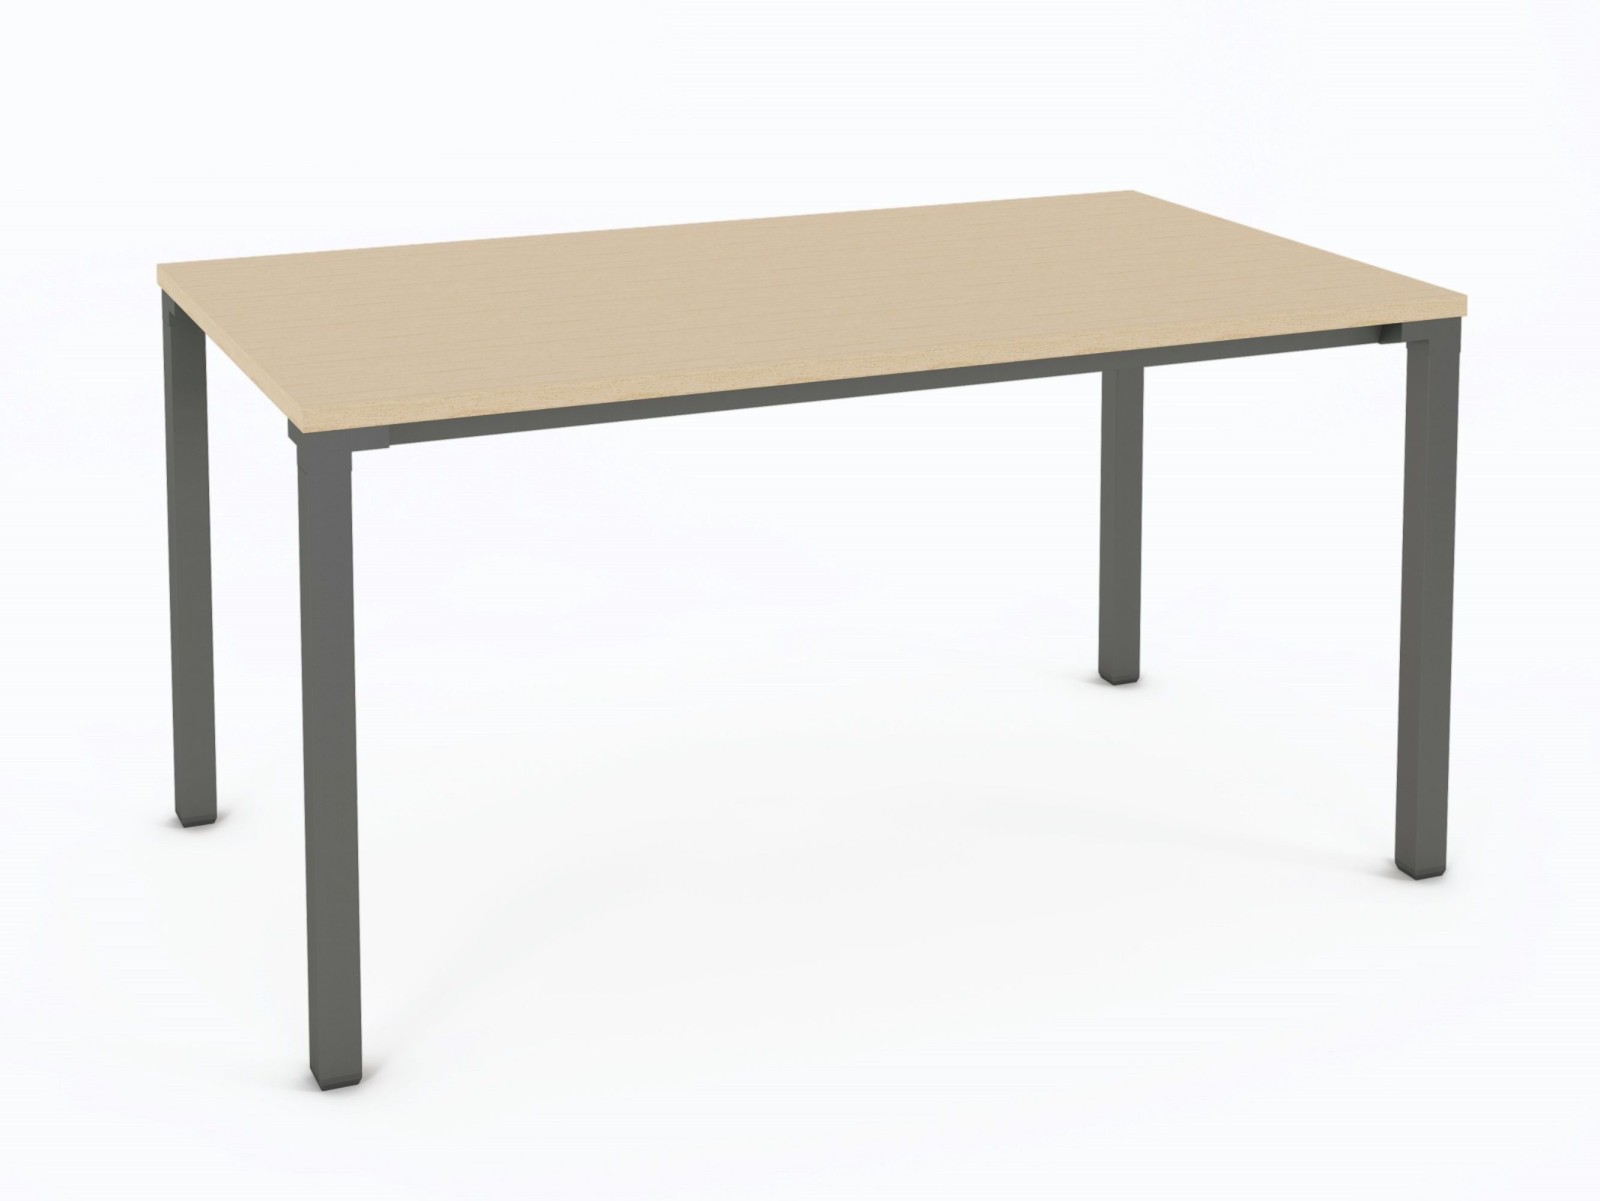 Kalidro Fixed Height Desk with Veneer Top